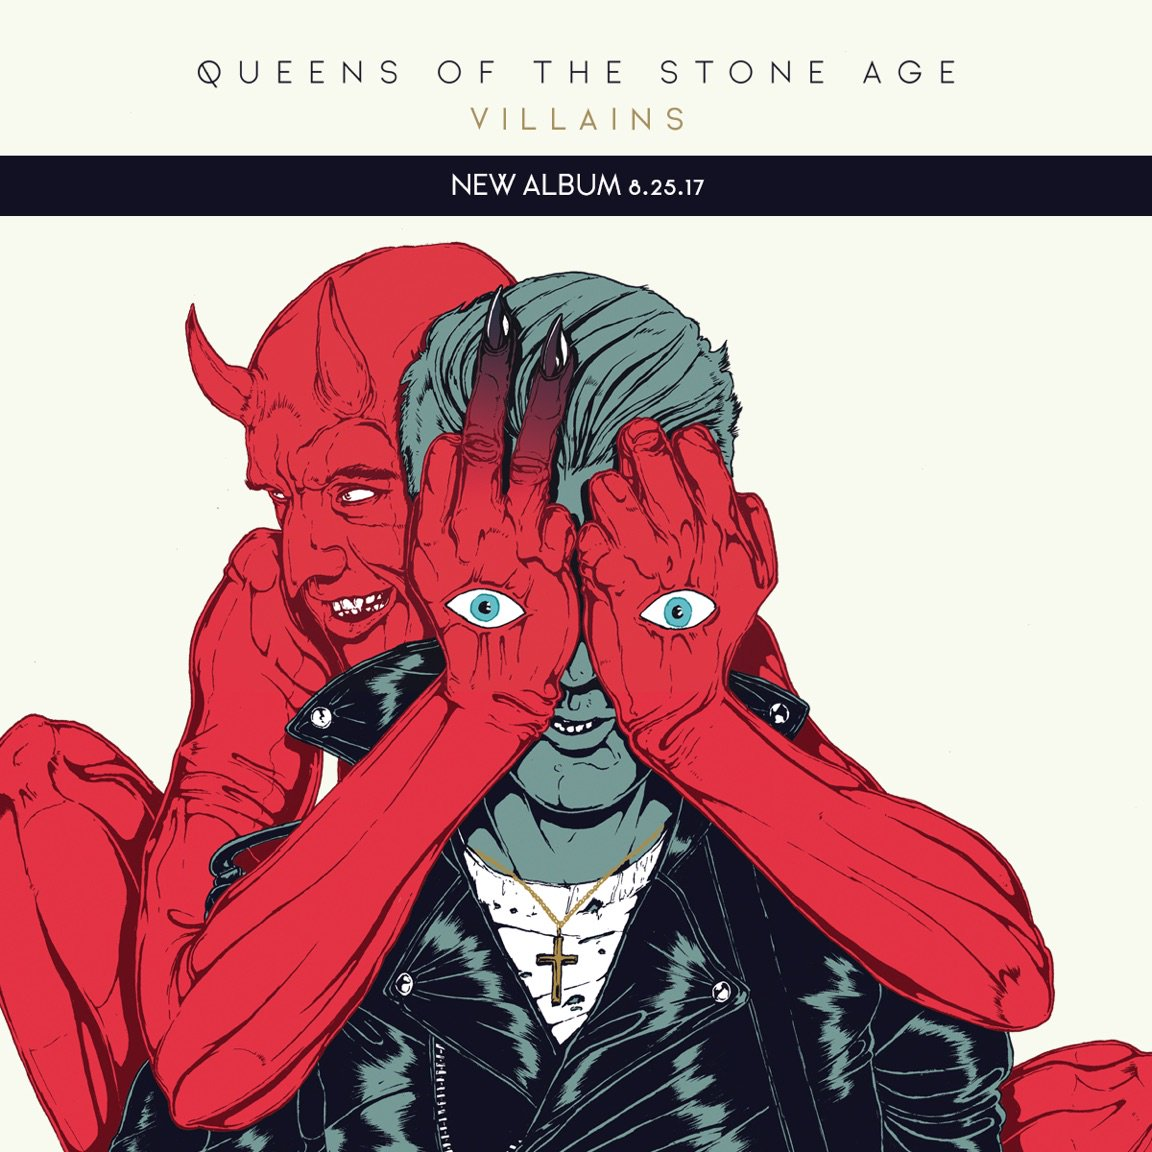 HEAR WHAT'S NEW: Queens of the Stone Age – The Way You Used To Do